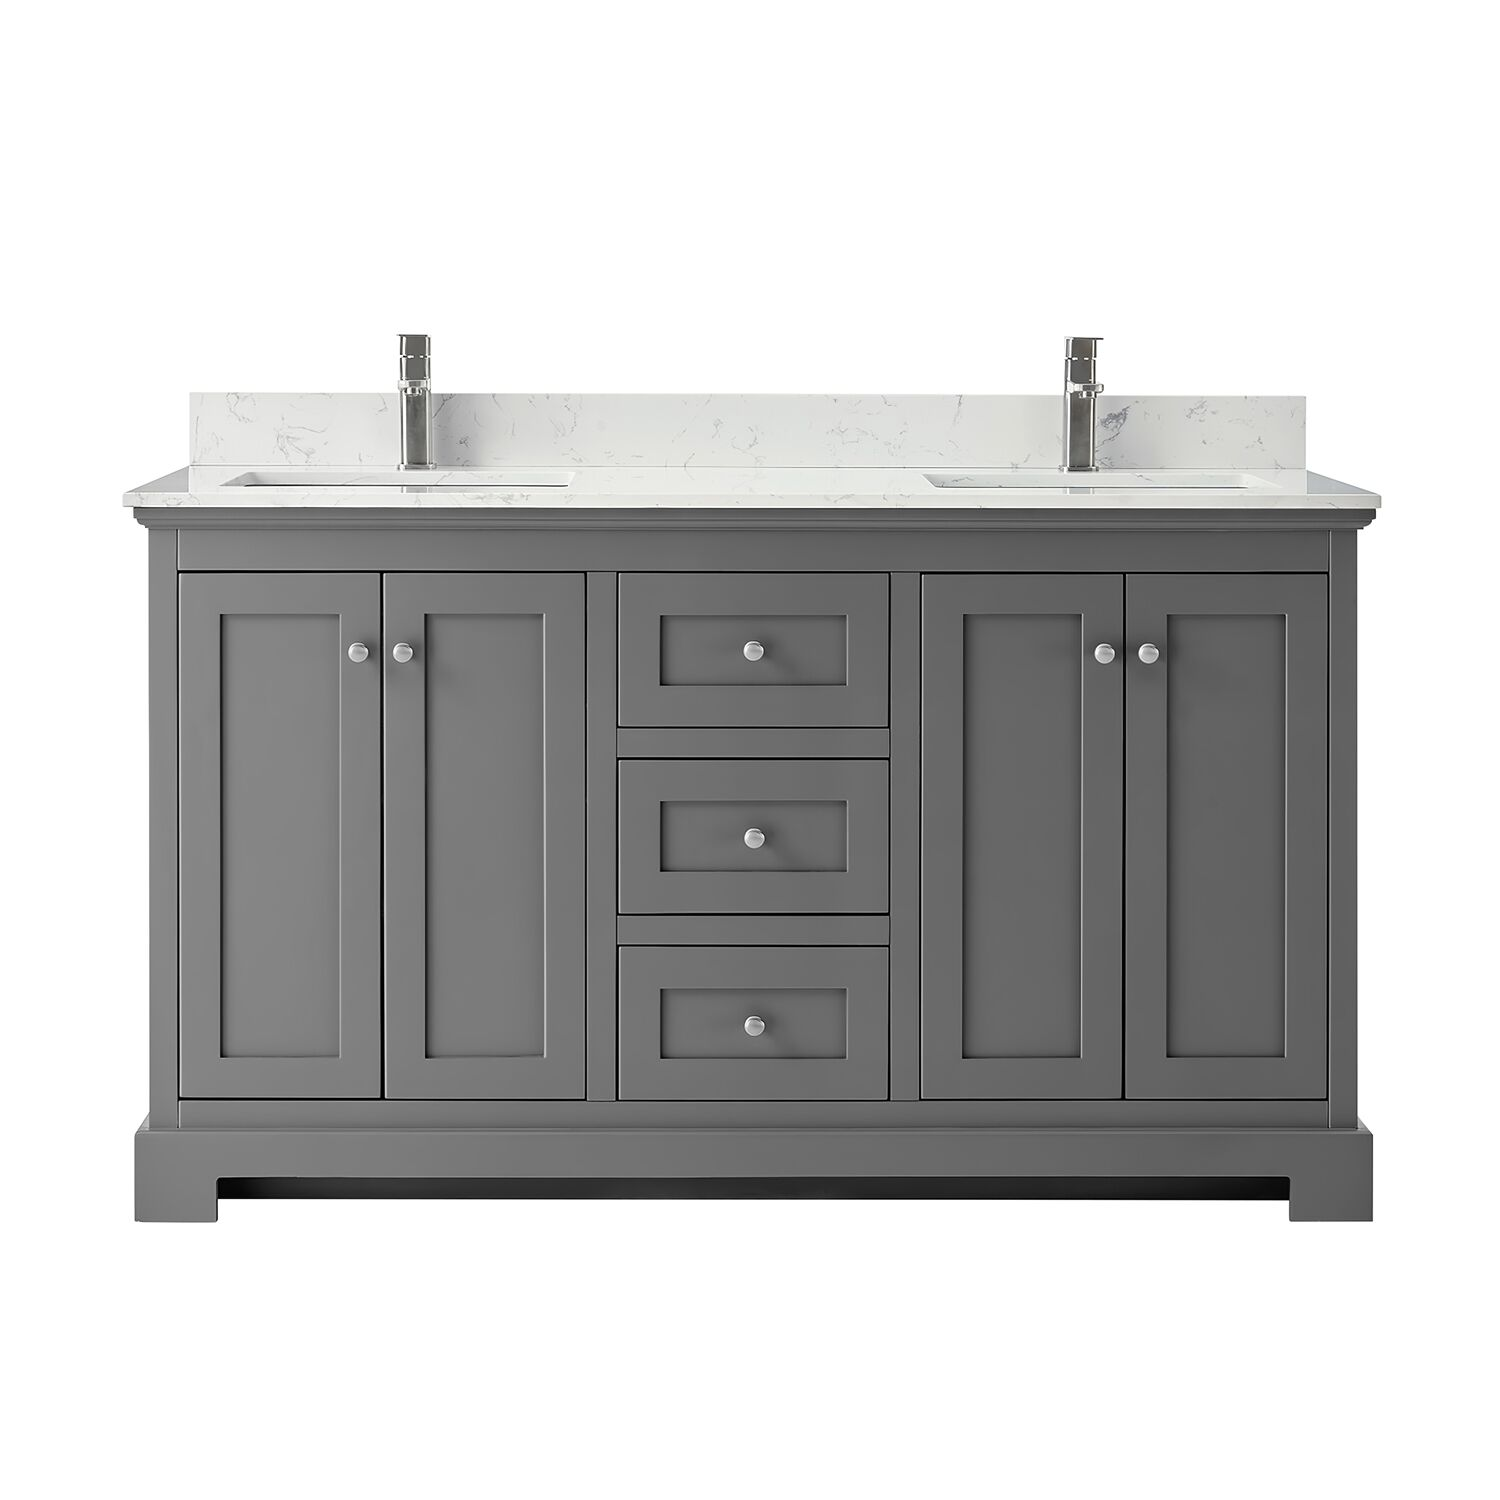 "60"" Double Bathroom Vanity in Dark Gray, Carrara Cultured Marble Countertop, Undermount Square Sinks, No Mirror"